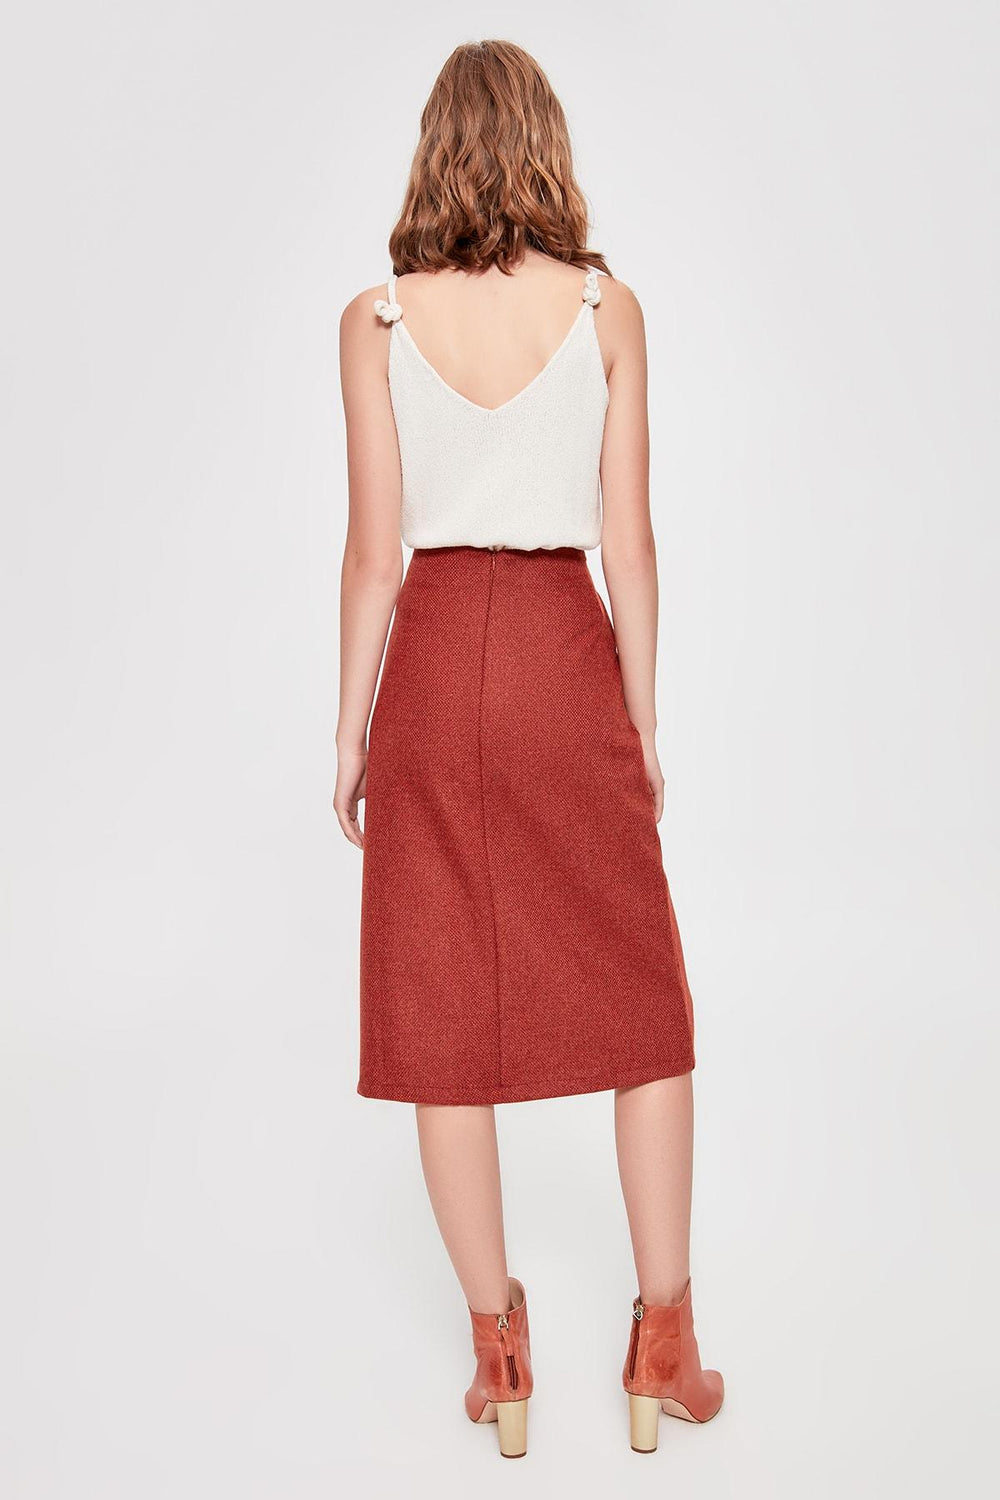 Tile Midi Skirt - Top Maxy